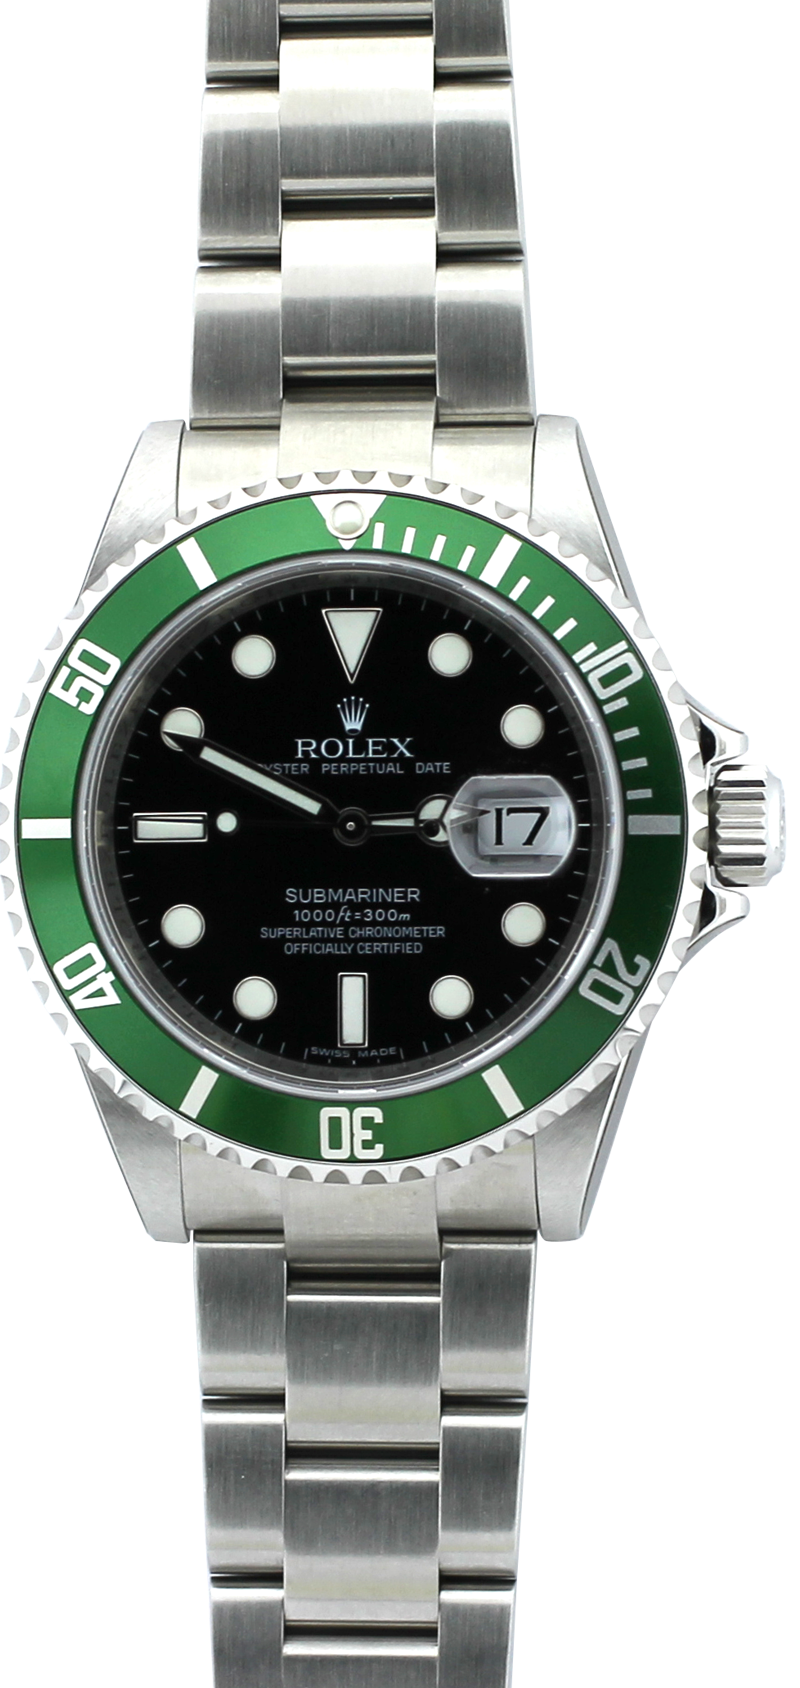 Rolex Steel Green Anniversary Submariner 16610T with Box & Booklets (Factory Case Stickers)